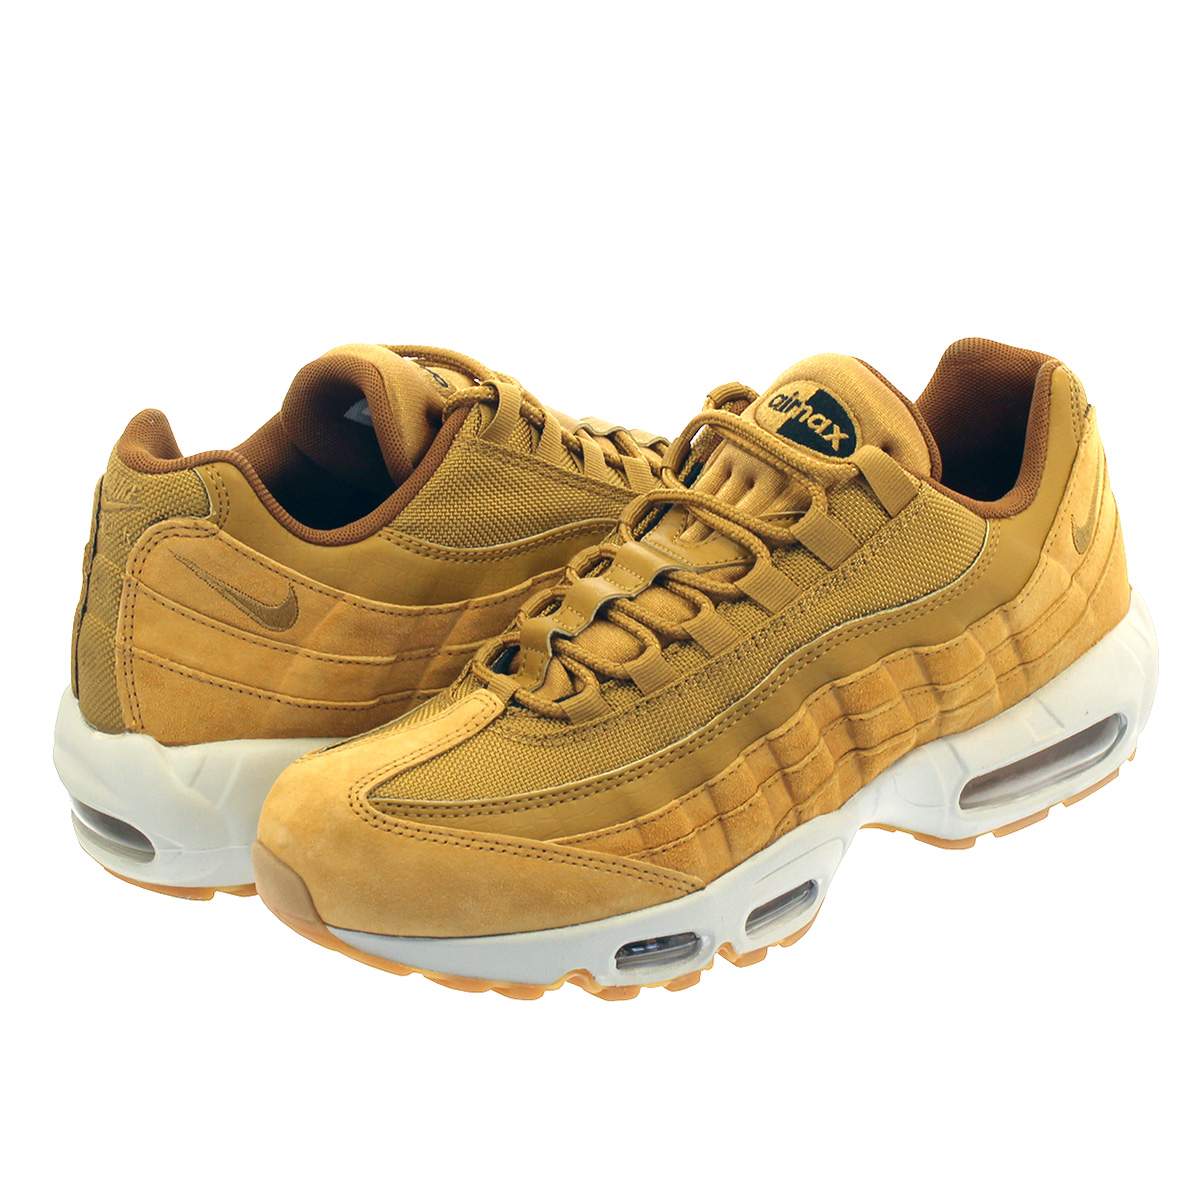 new arrival 50771 94044 NIKE AIR MAX 95 SE Kie Ney AMAX 95 SE WHEAT LIGHT BONE aj2018-700